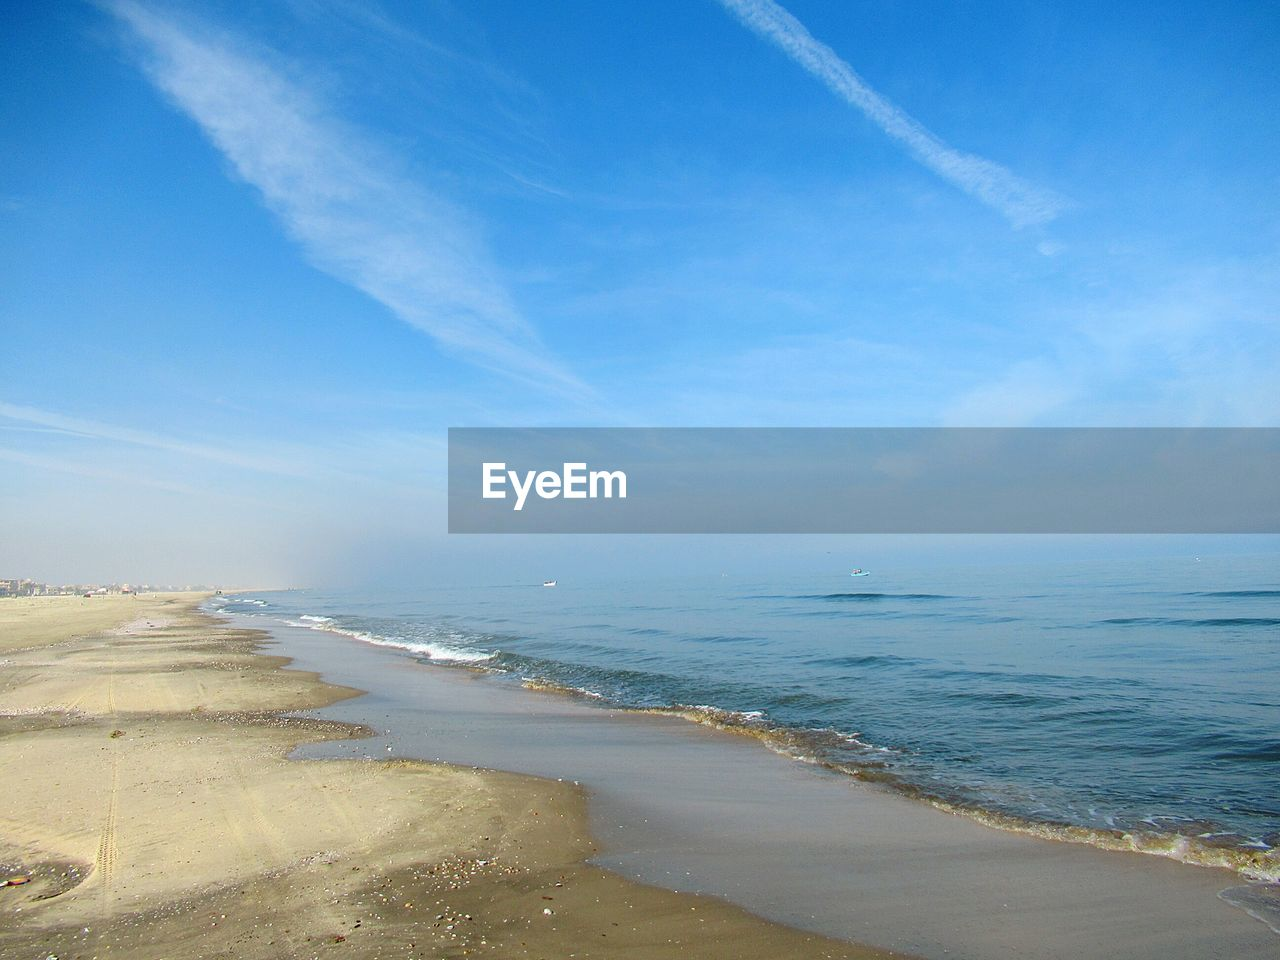 sea, beach, water, land, sky, beauty in nature, scenics - nature, cloud - sky, nature, horizon, horizon over water, tranquility, tranquil scene, no people, blue, sand, non-urban scene, day, outdoors